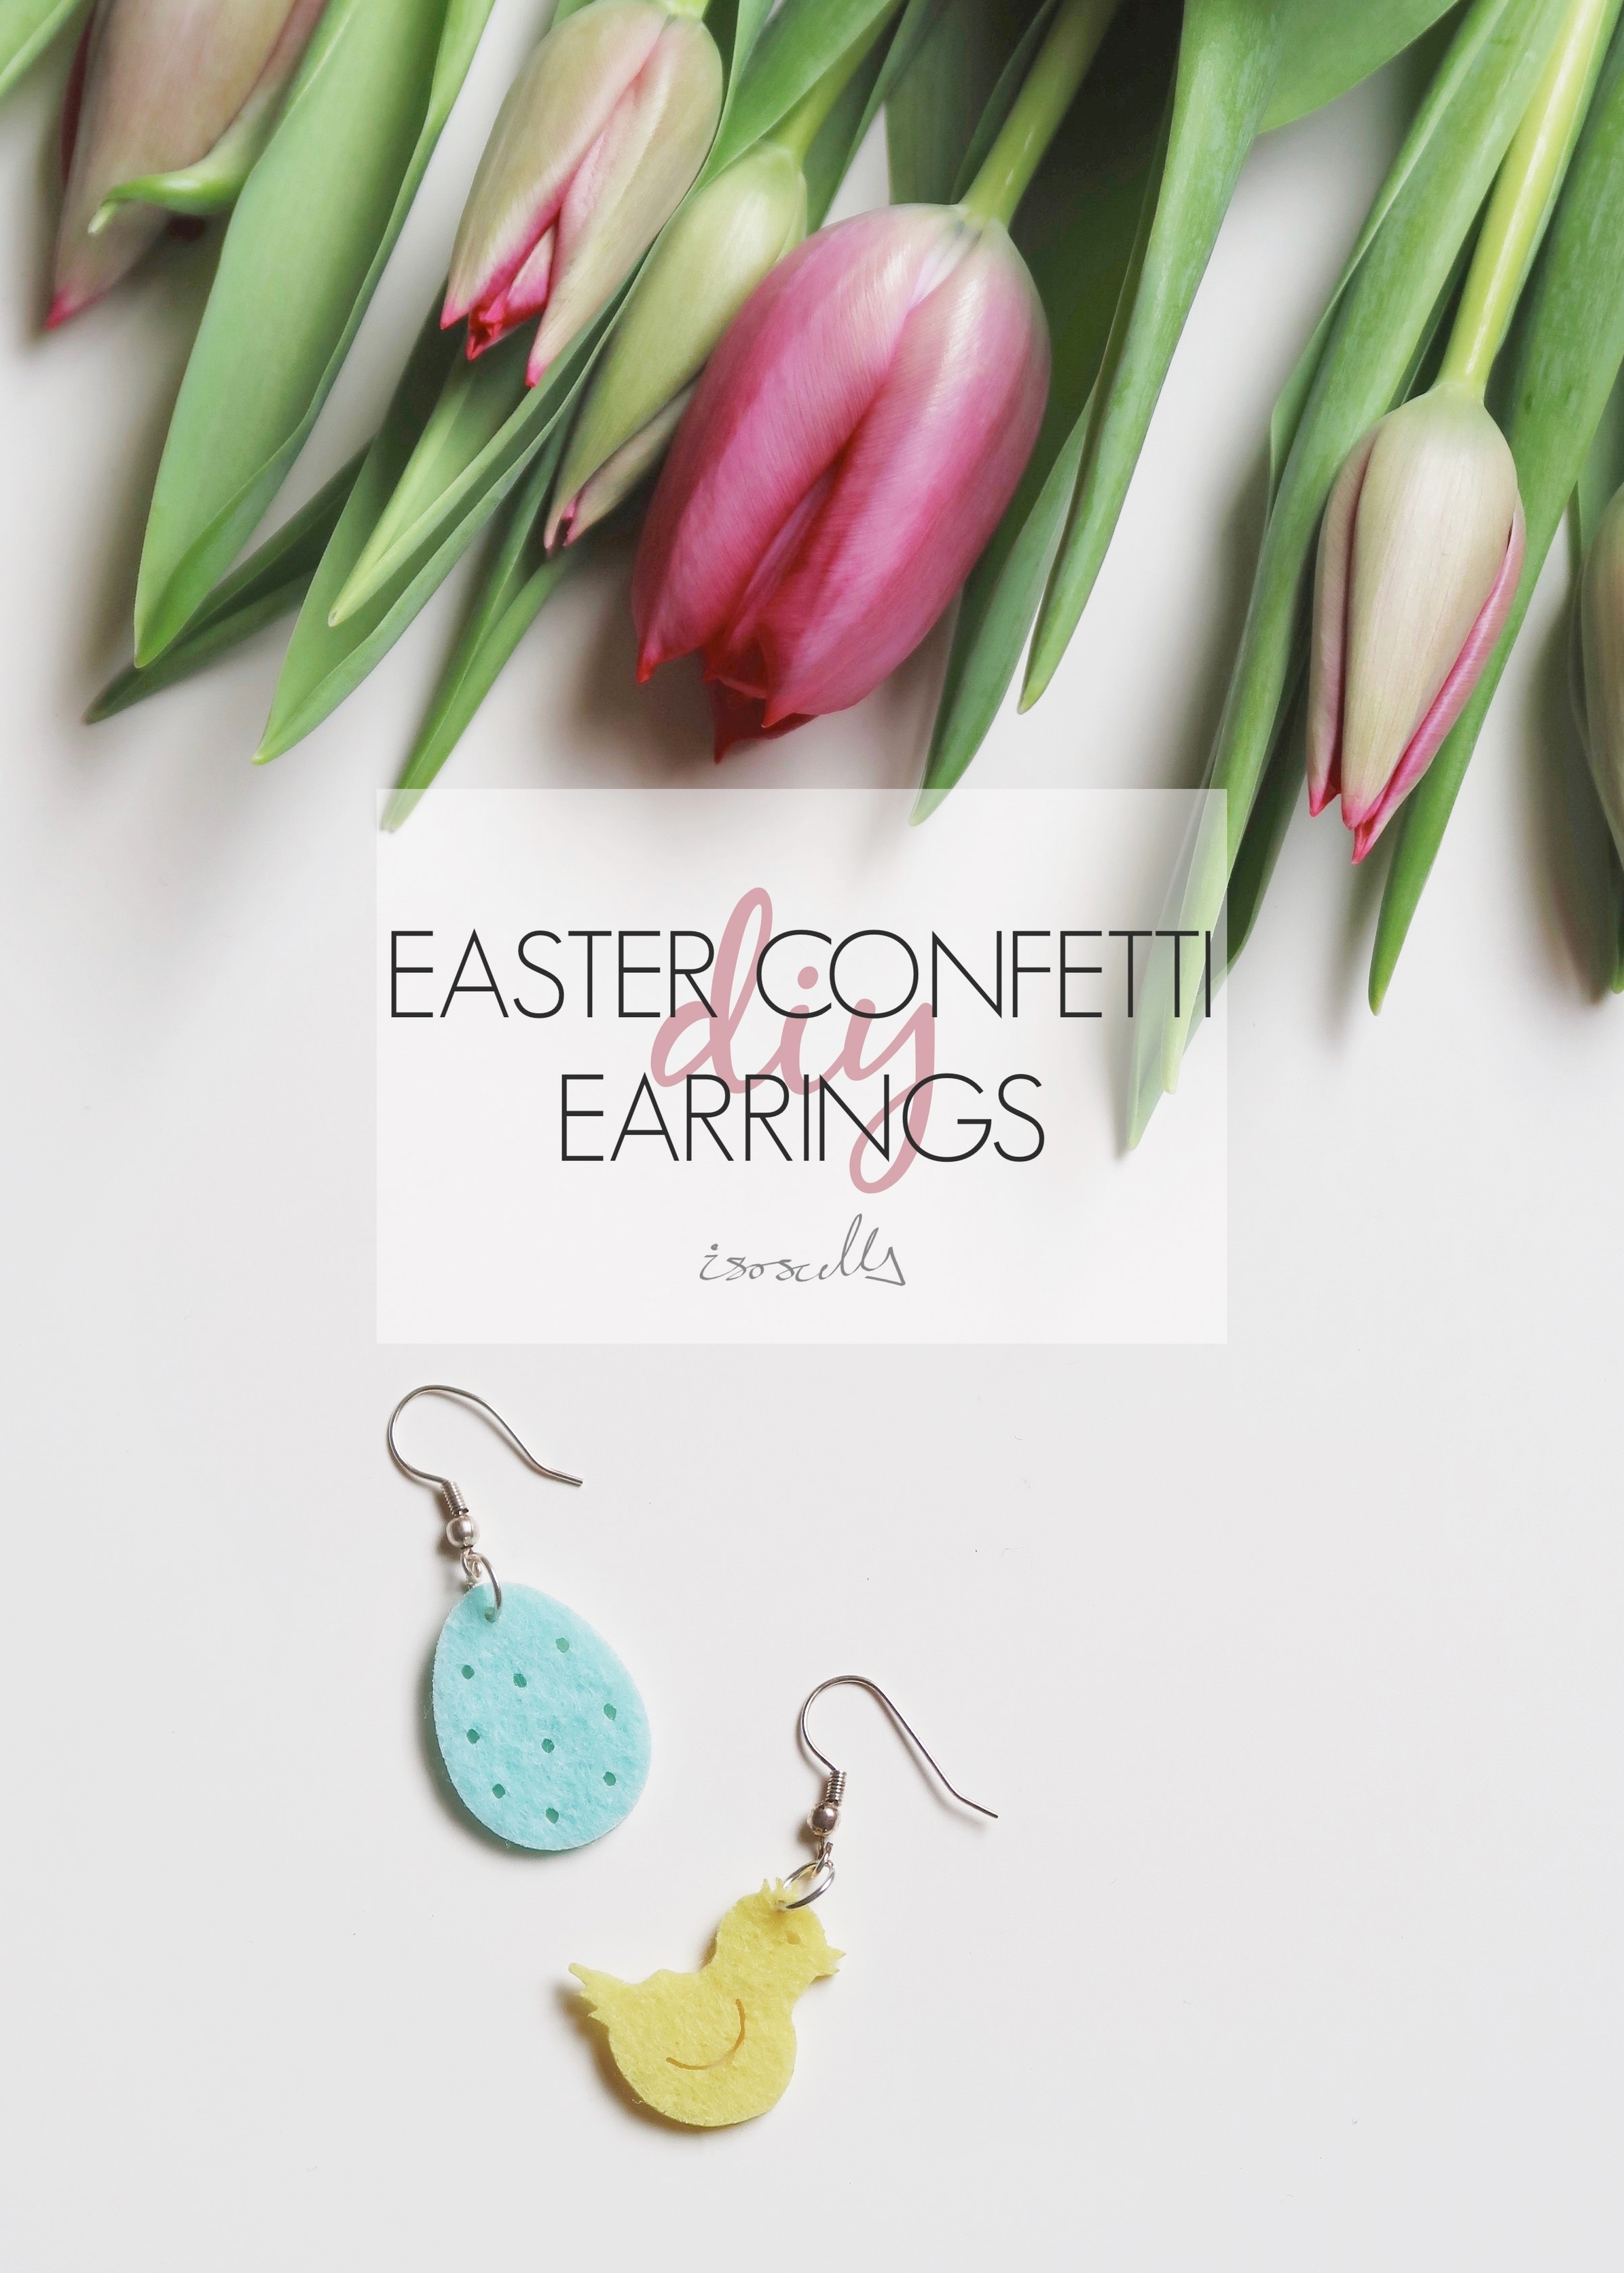 5 Minute DIY - Easter Confetti Earrings - Isoscella